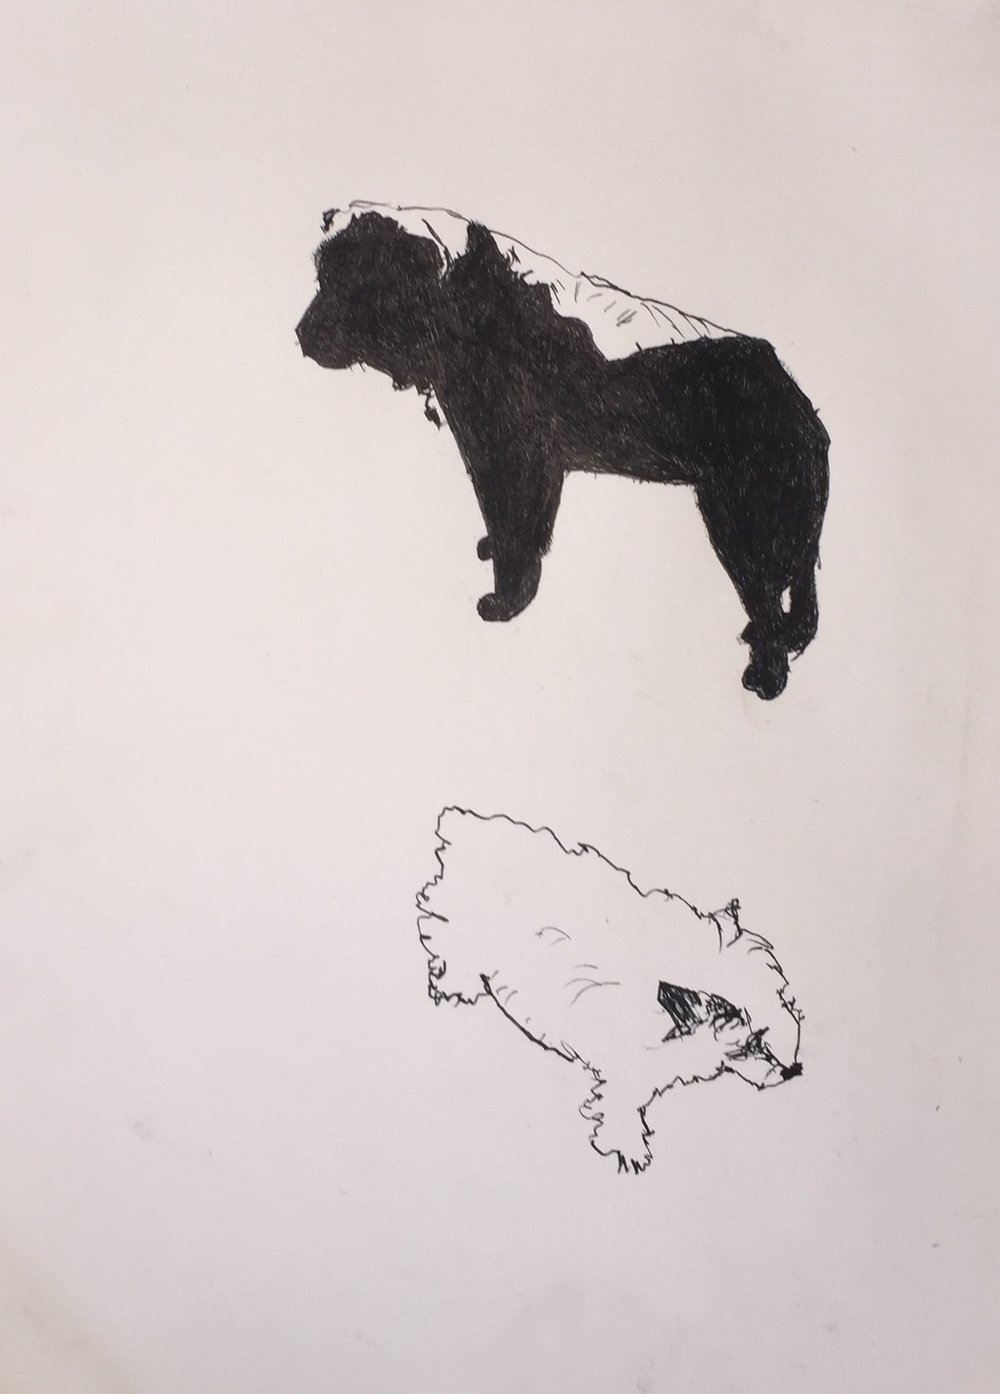 Big dog little dog, pen&ink and charcoal, 7x9-1/2, $25